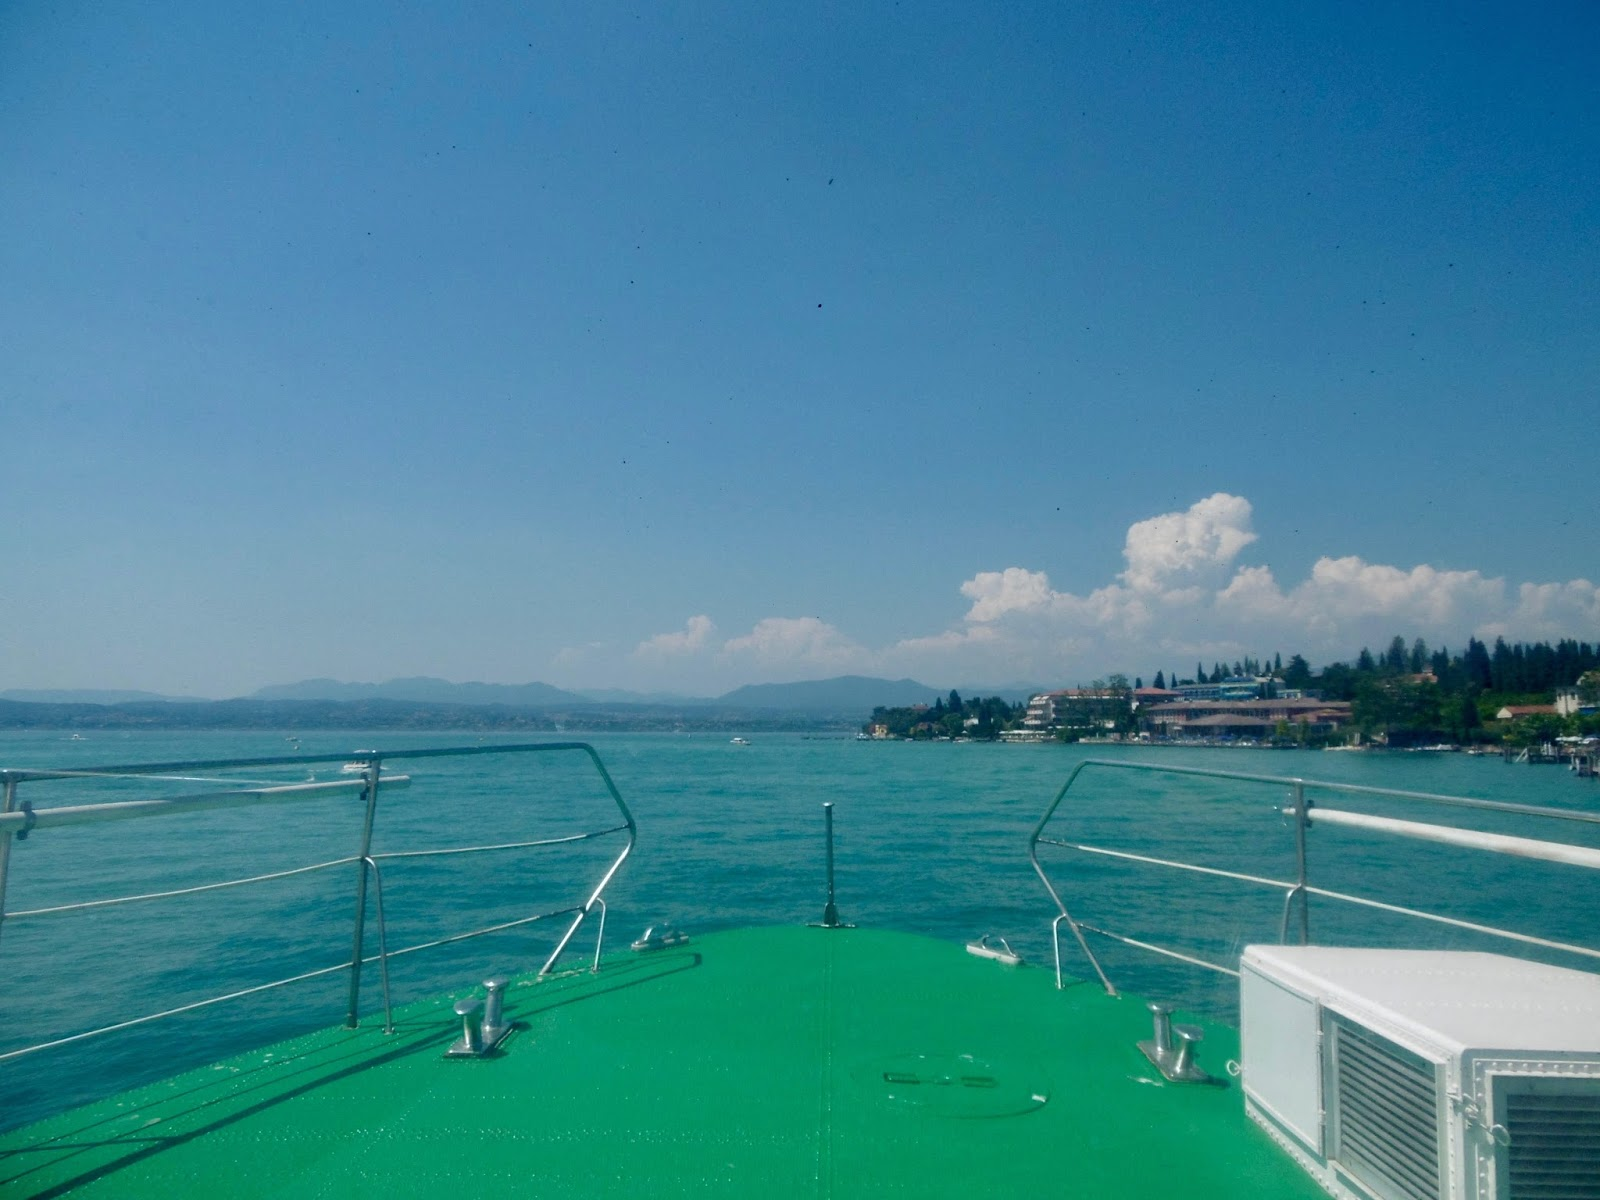 riding a boat in Lake Garda